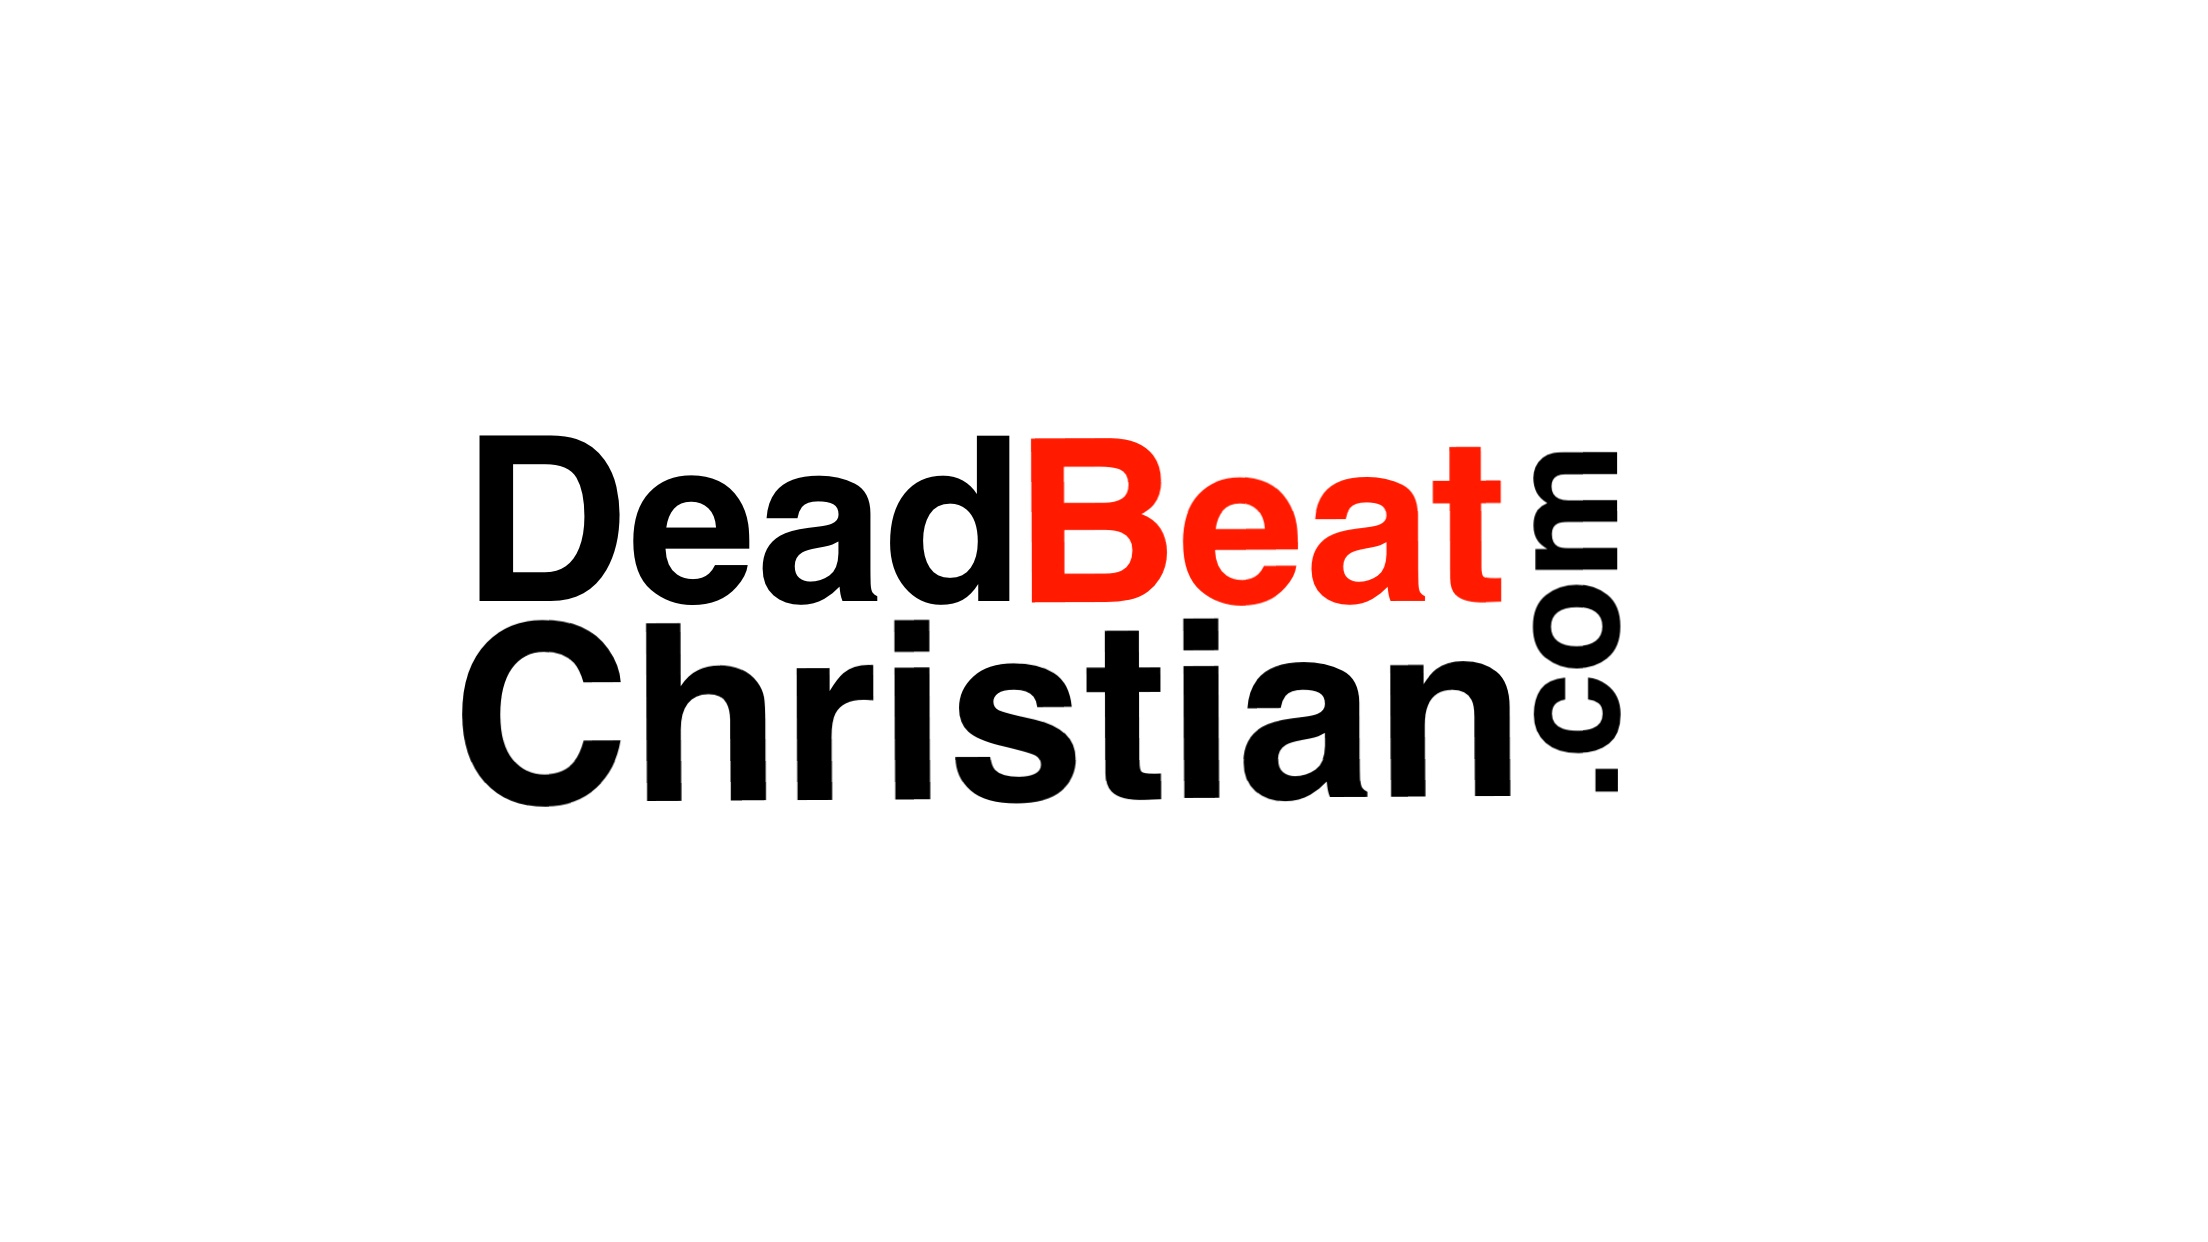 Don't Be a DeadBeat Christian